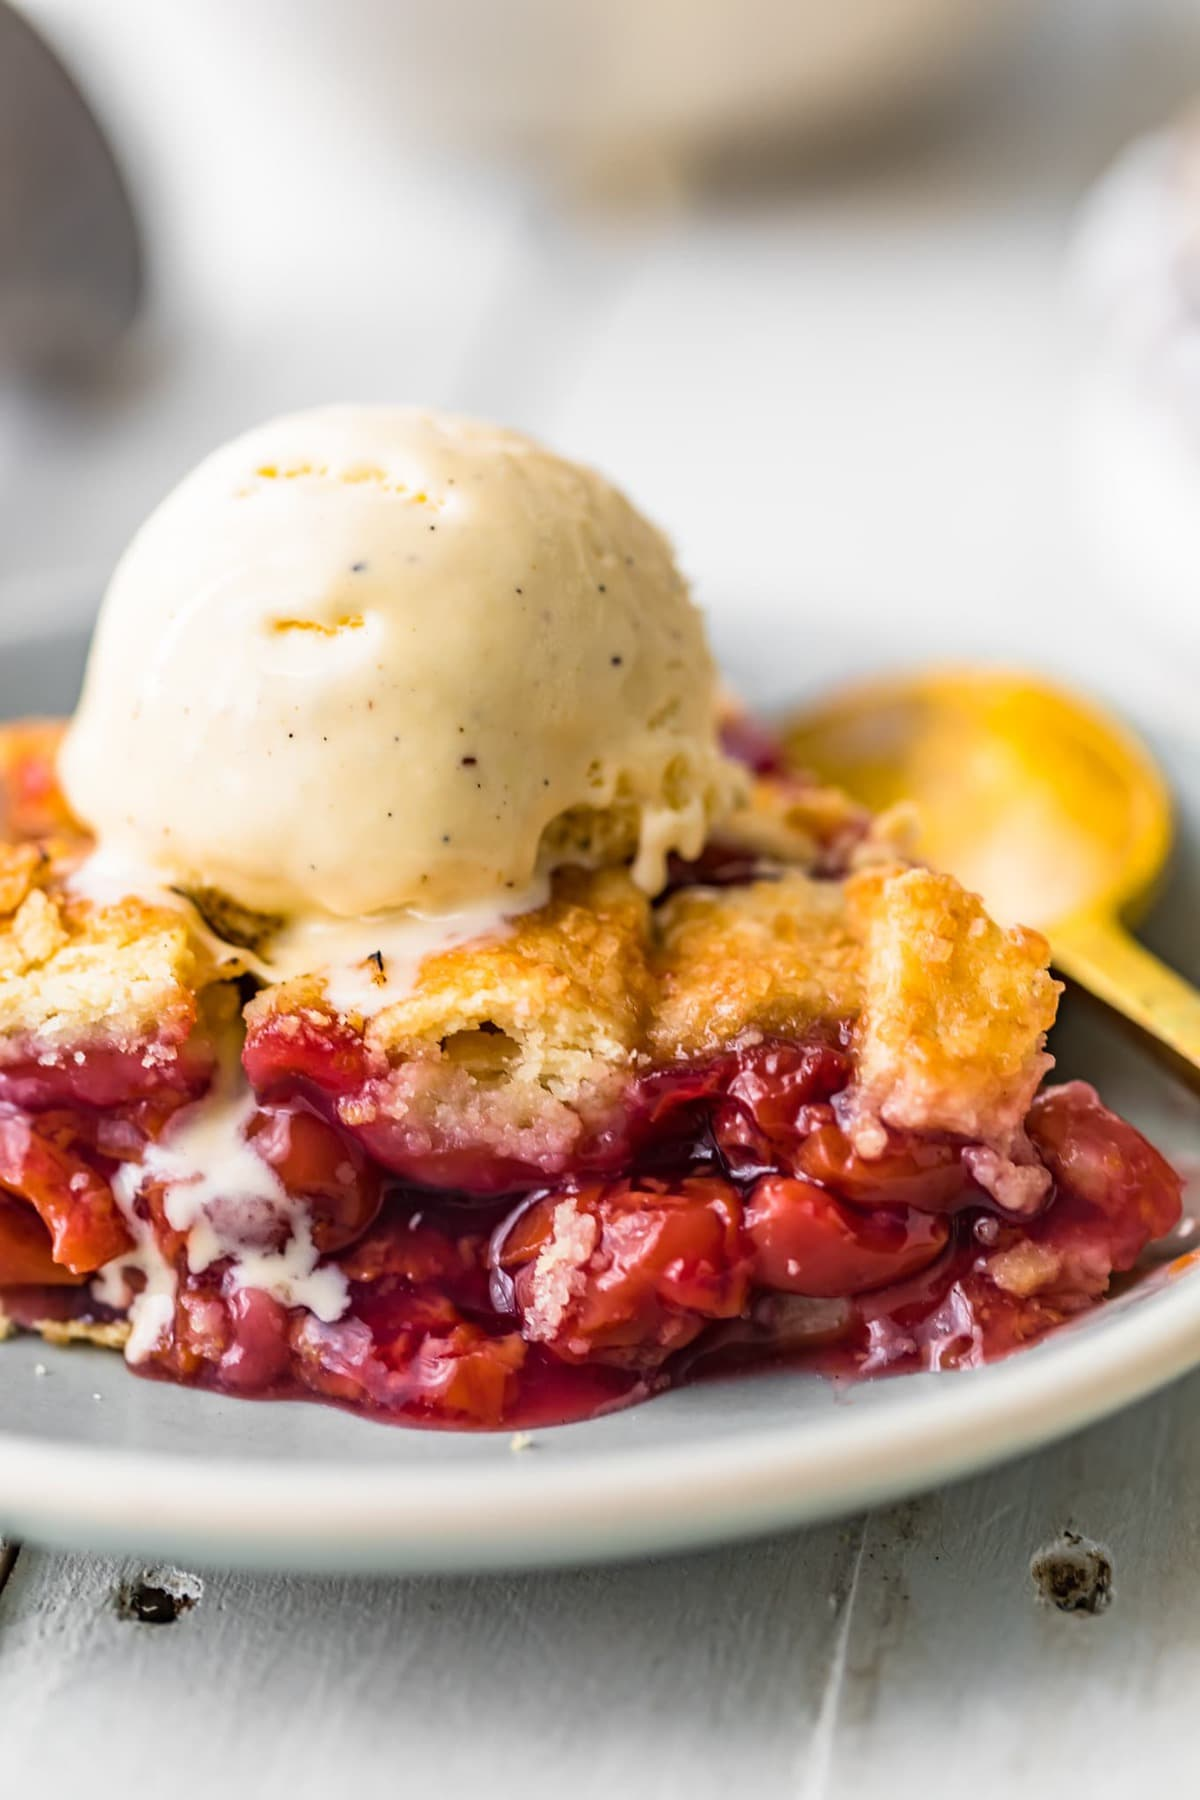 A slice of homemade cherry pie with ice cream on top